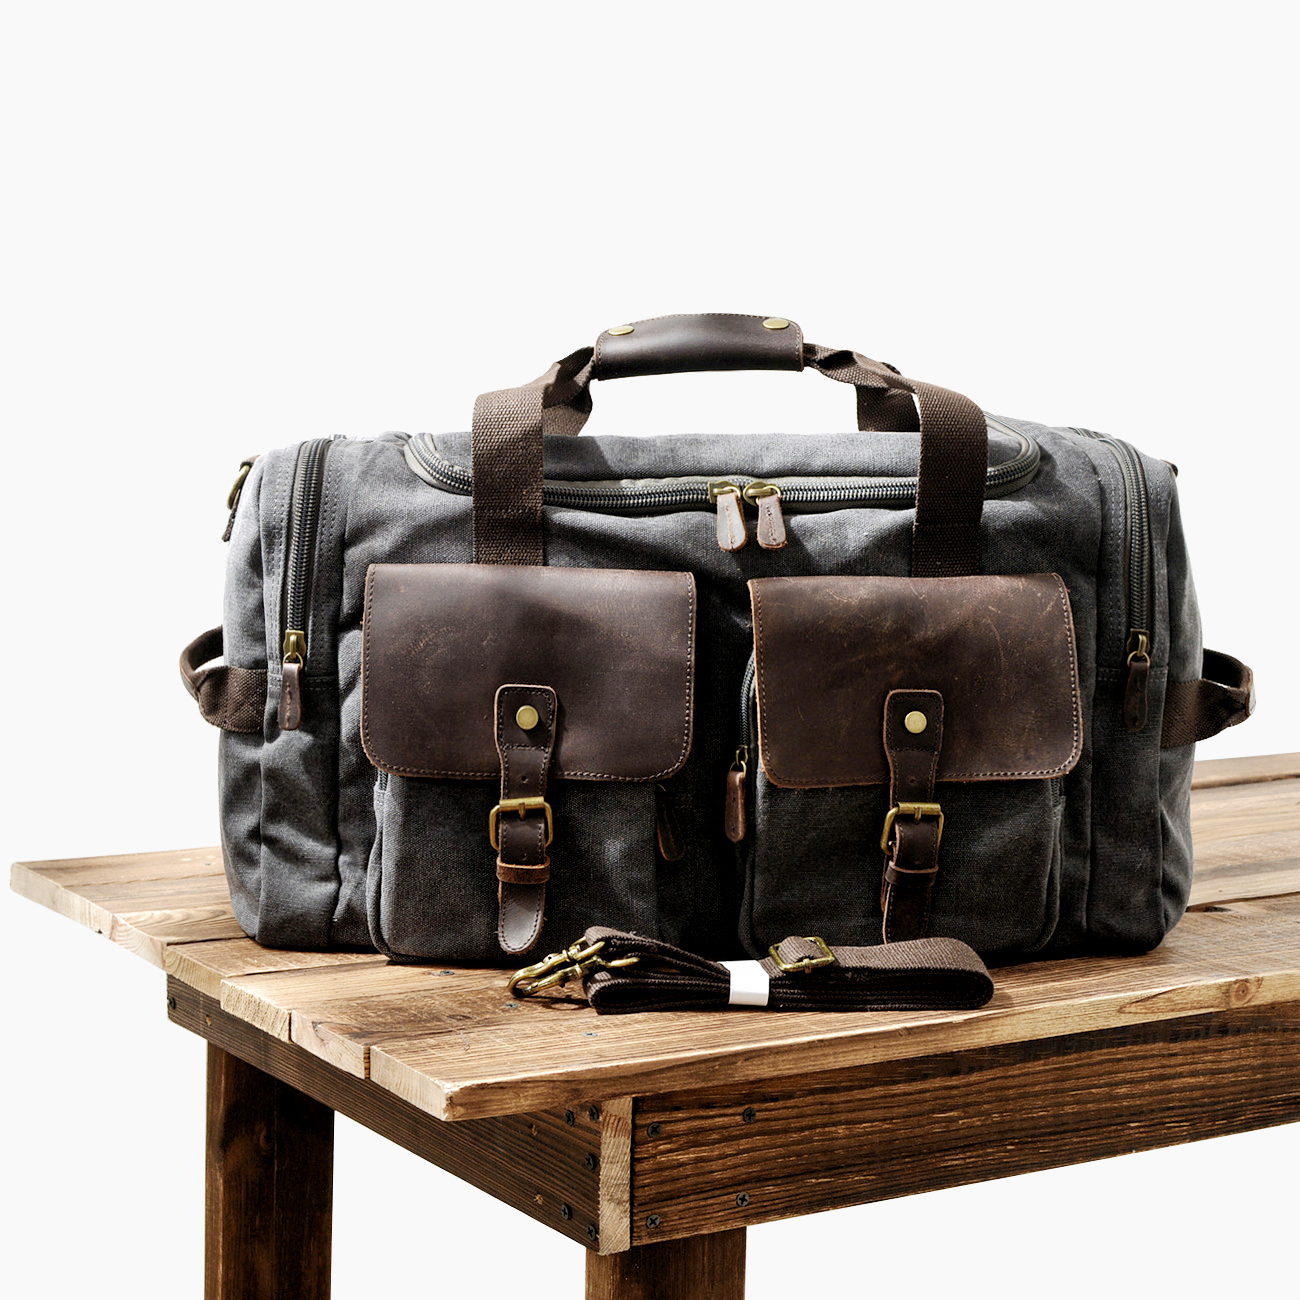 Travel Duffel Canvas Bag Canvas with Crazy Horse and Outdoor Leisure Business Travel Bag Hand Short Gym Sports Luggage Bag